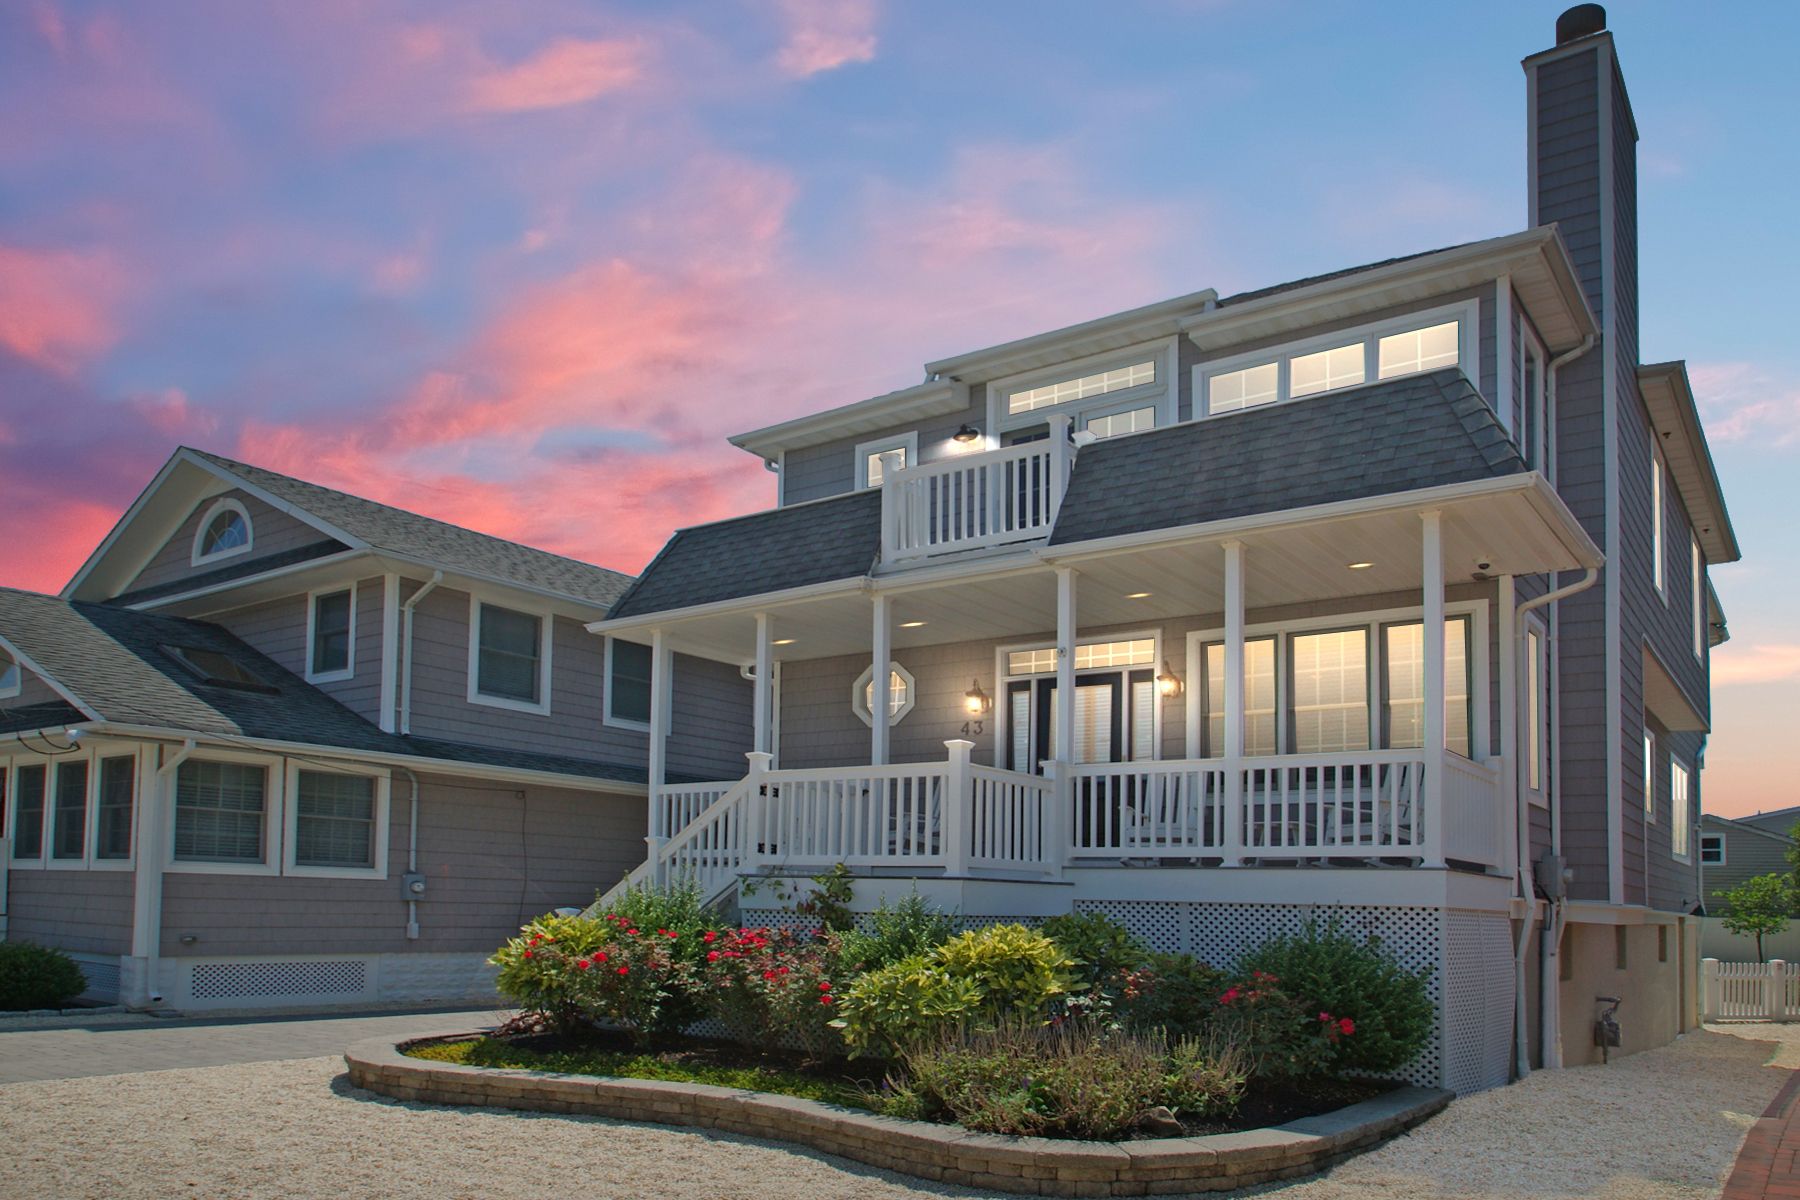 Single Family Homes for Sale at Custom Built Oceanblock Home 43 3rd Avenue Normandy Beach, New Jersey 08739 United States